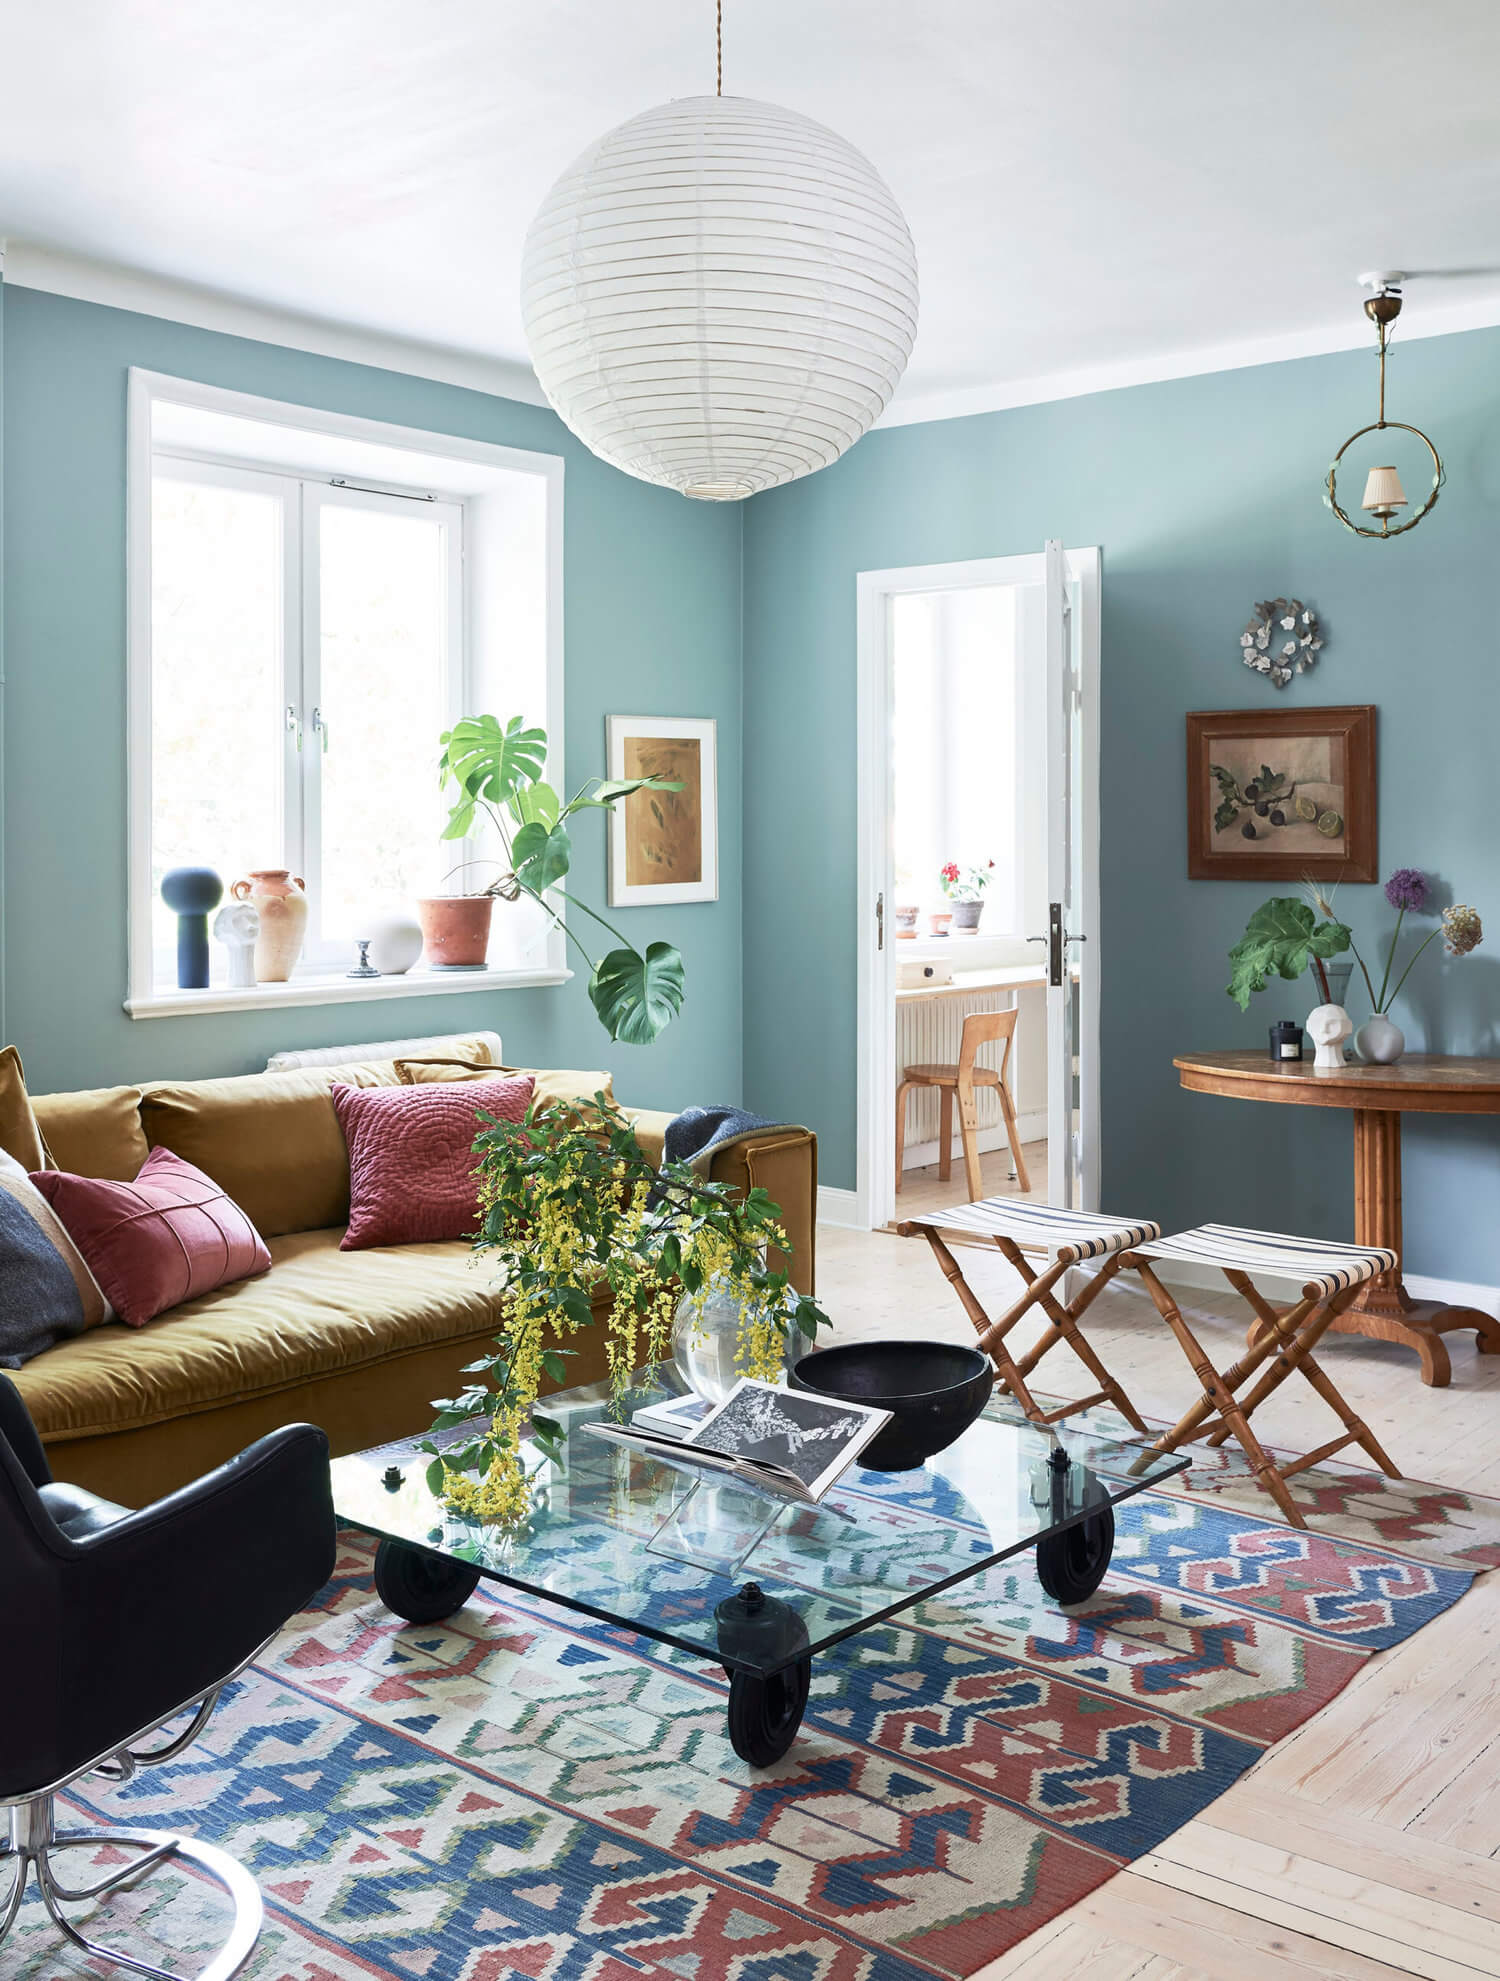 A Stockholm Apartment with Bohemian and Natural Touches